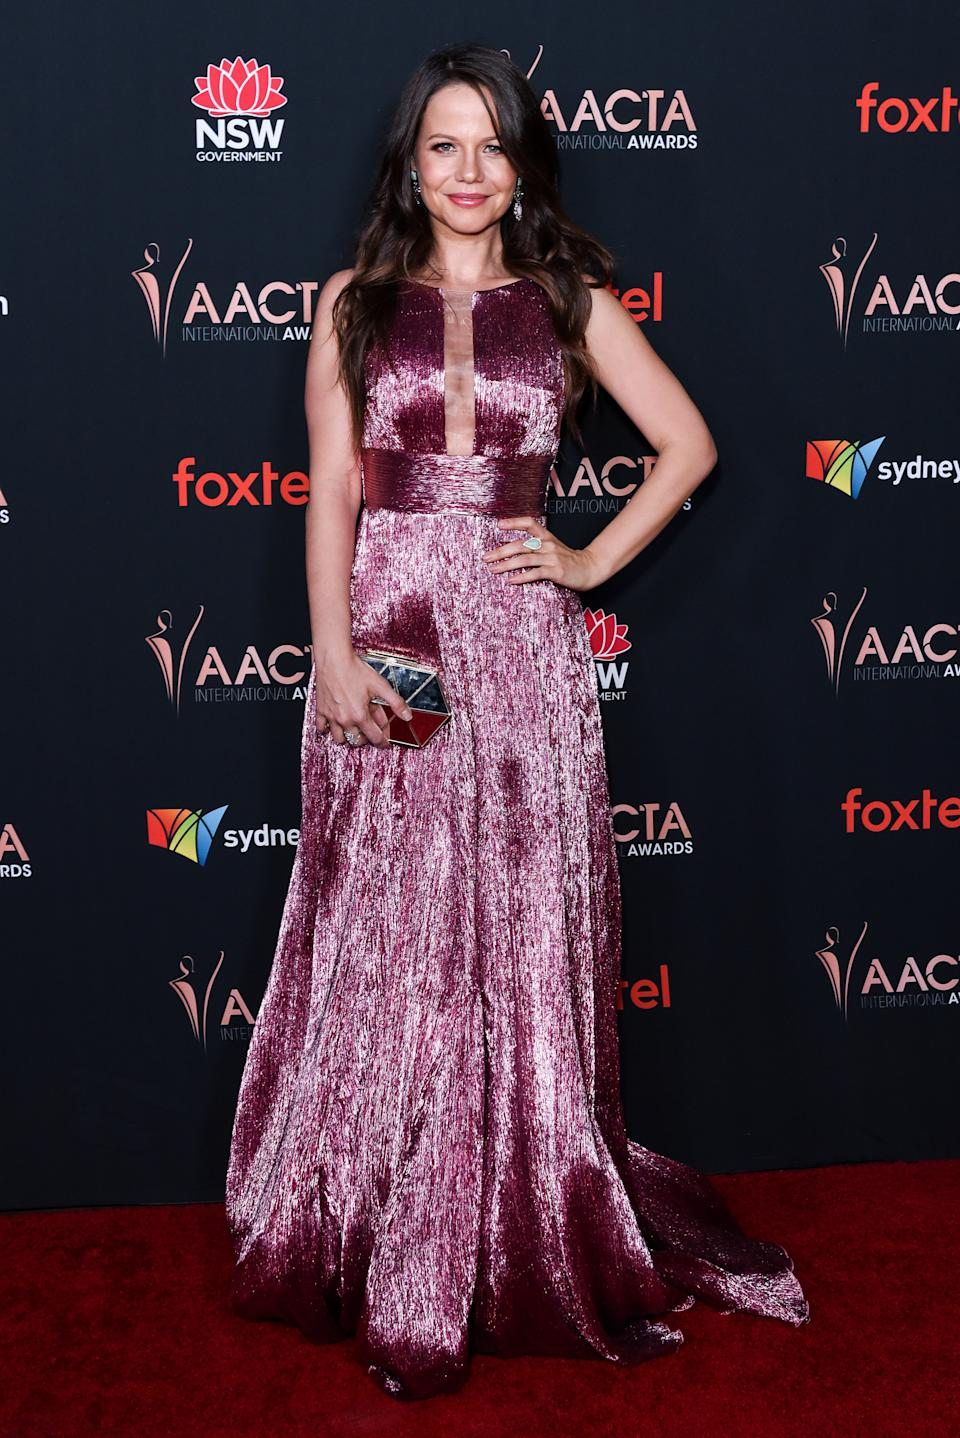 Tammin Sursok has shared whether or not she plans on returning to Home and Away, the show that made her famous. Photo: Getty